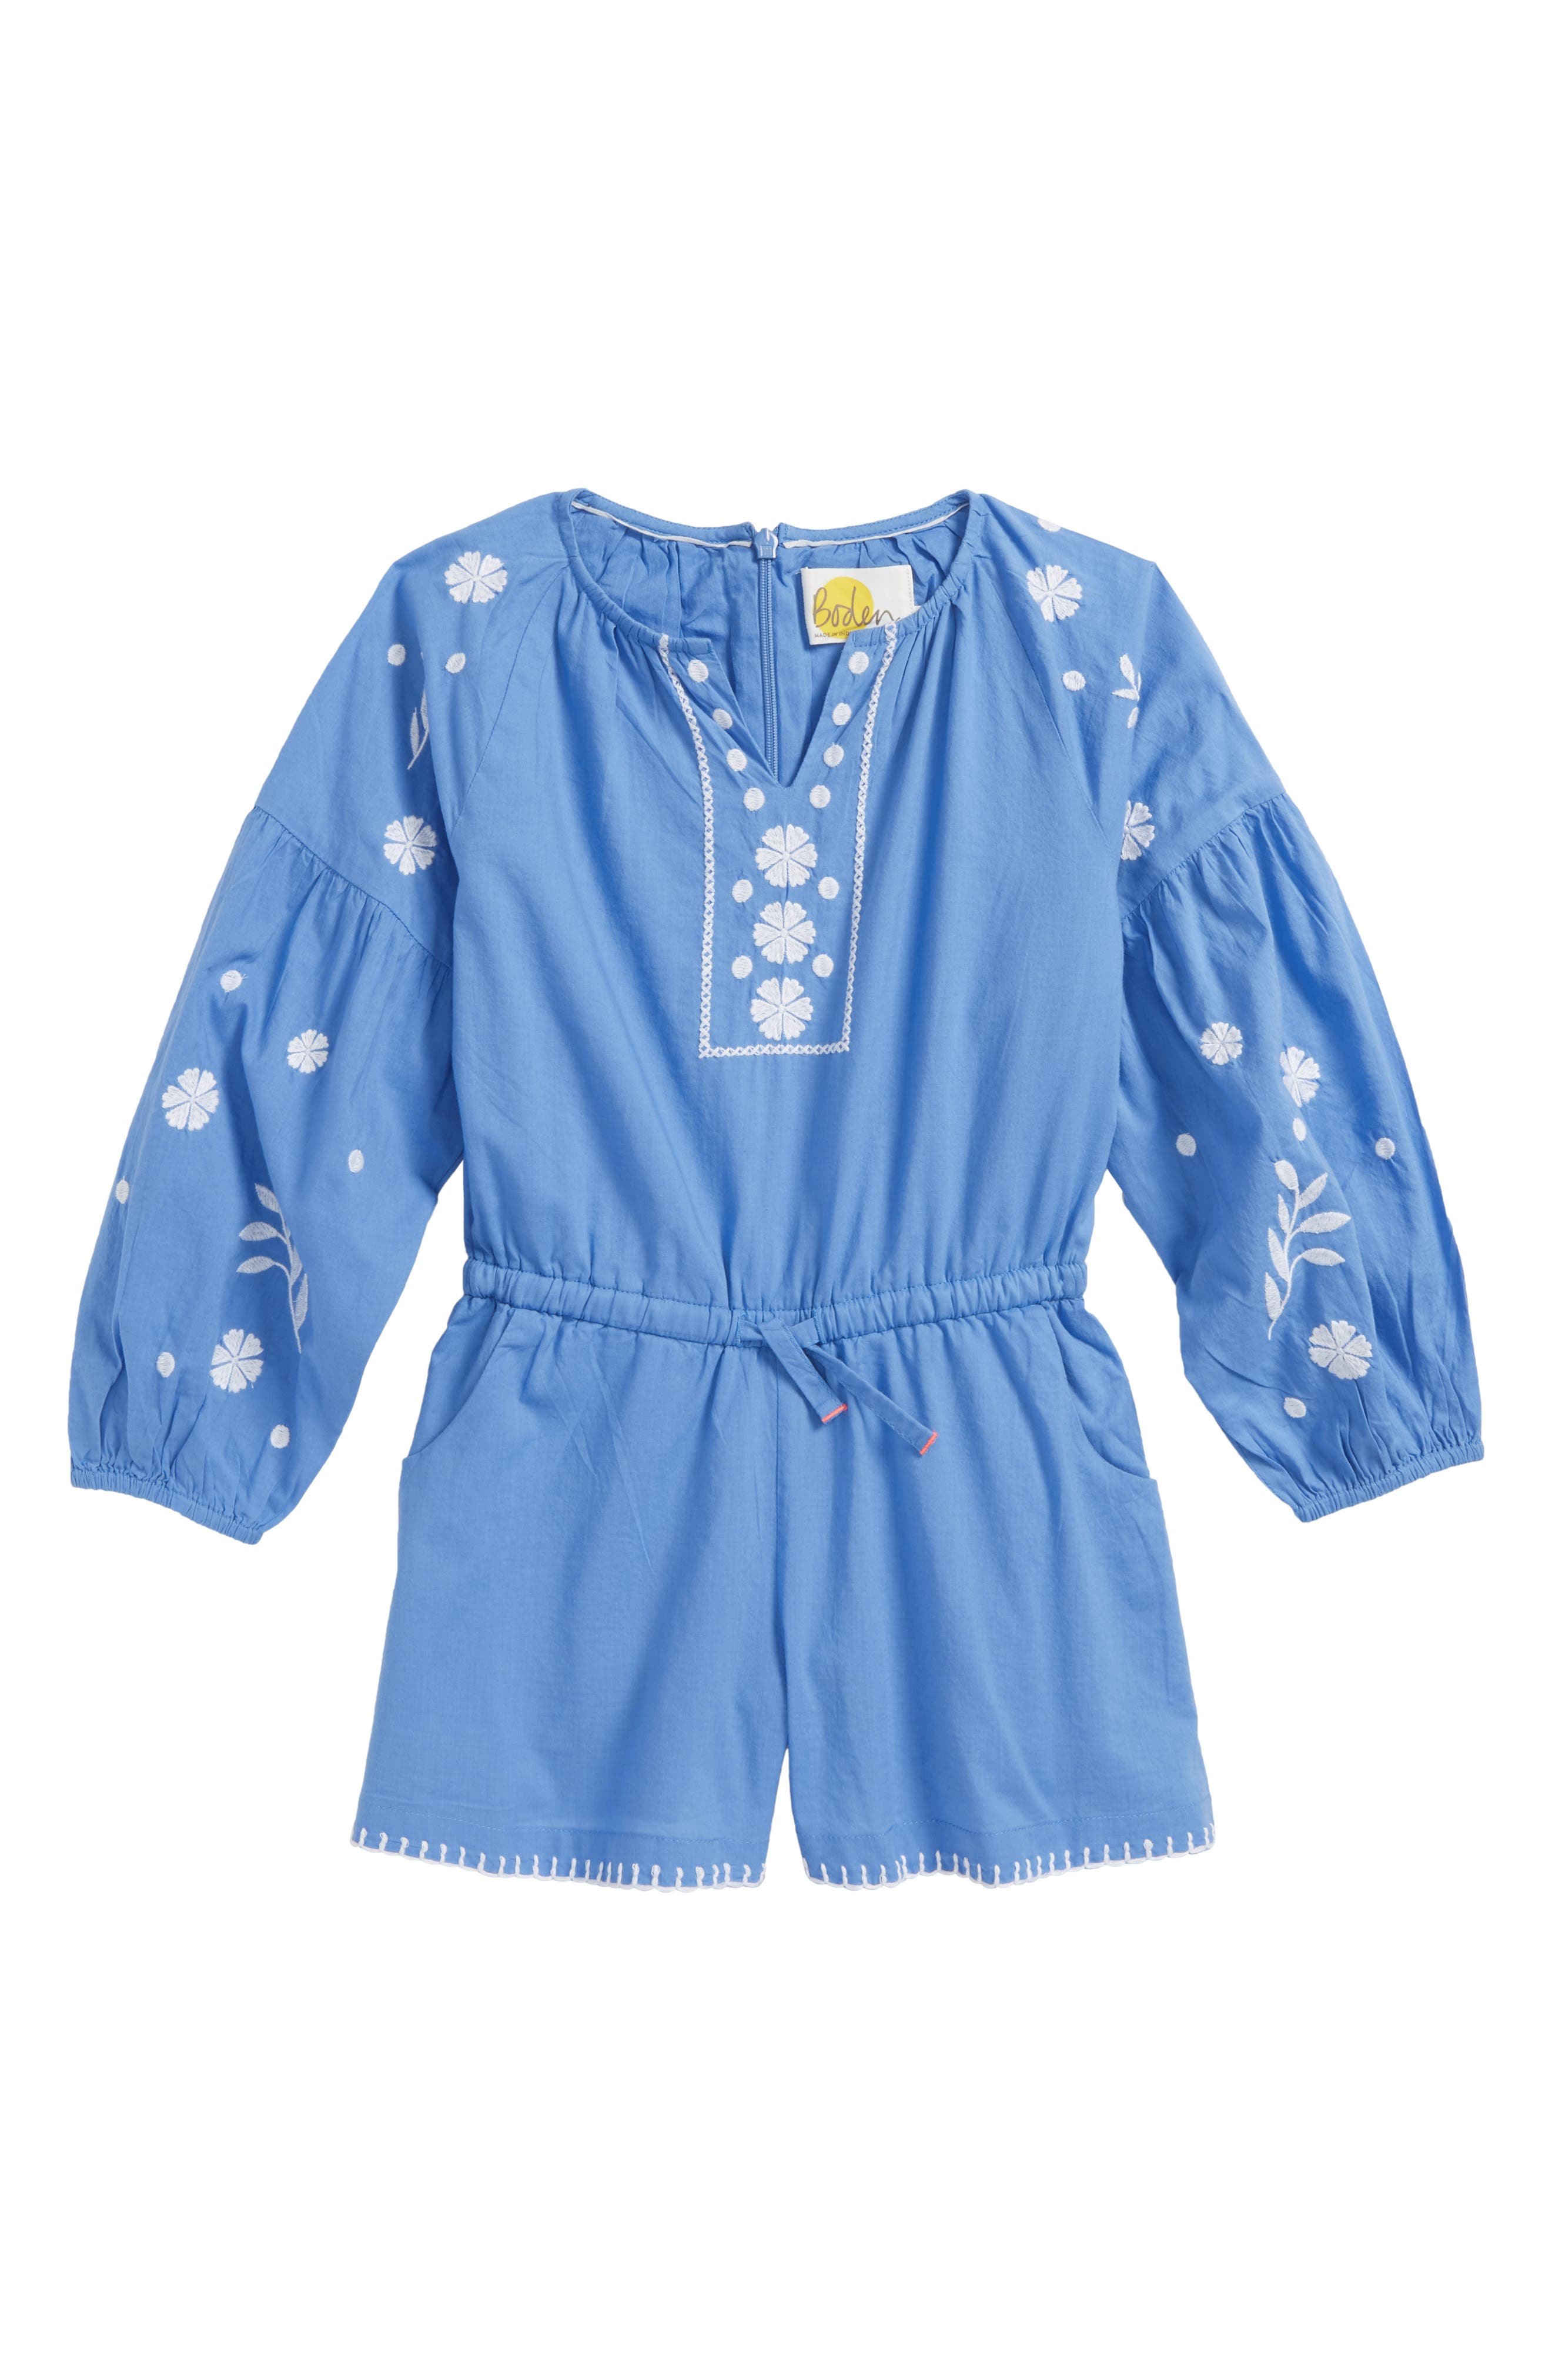 Embroidered Romper,                             Main thumbnail 1, color,                             Penzance Blue